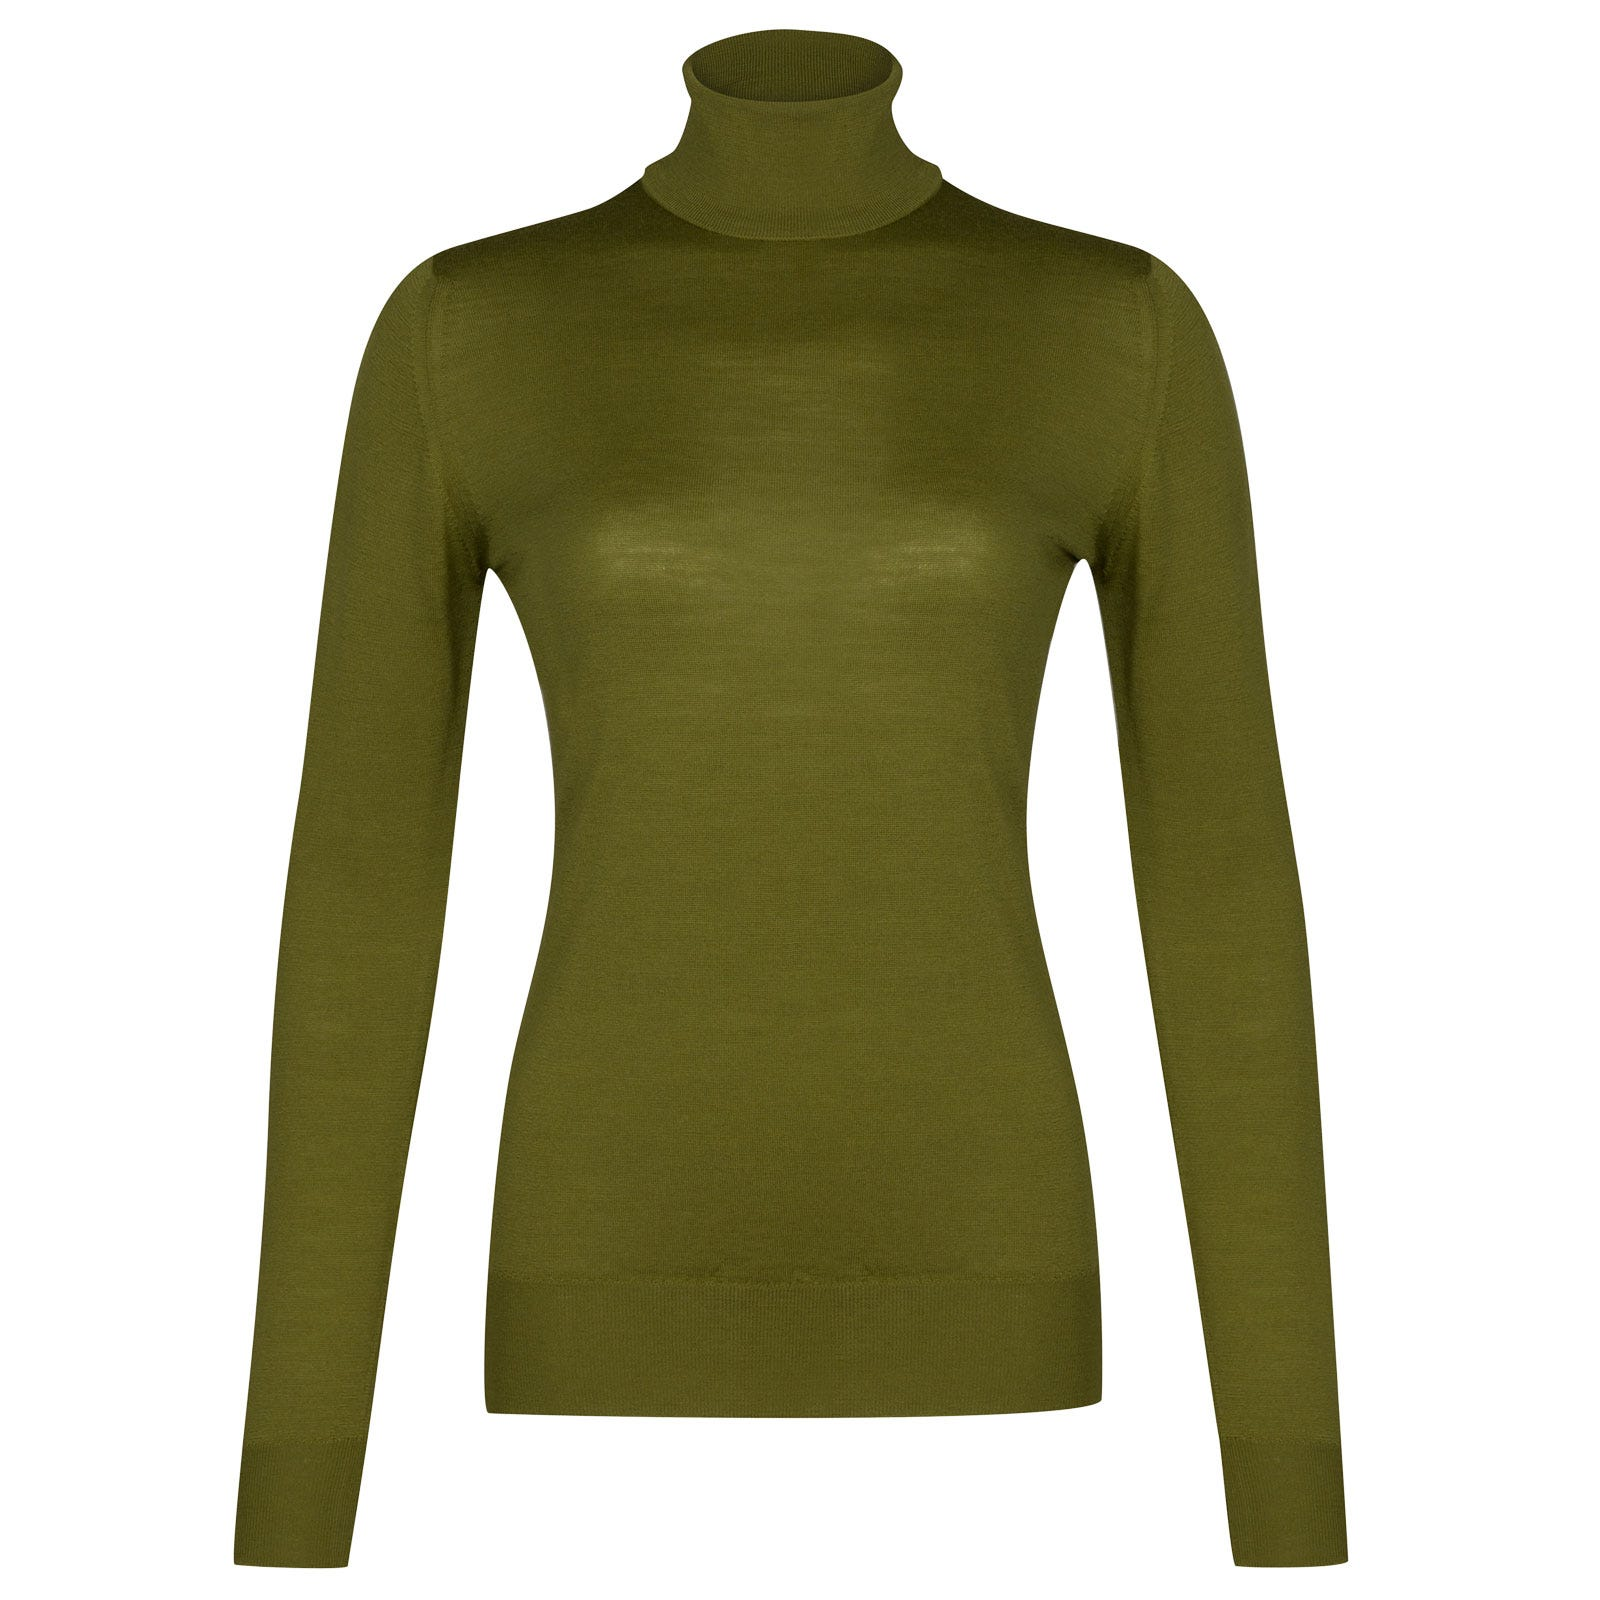 John Smedley Catkin Merino Wool Sweater in Lumsdale Green-L